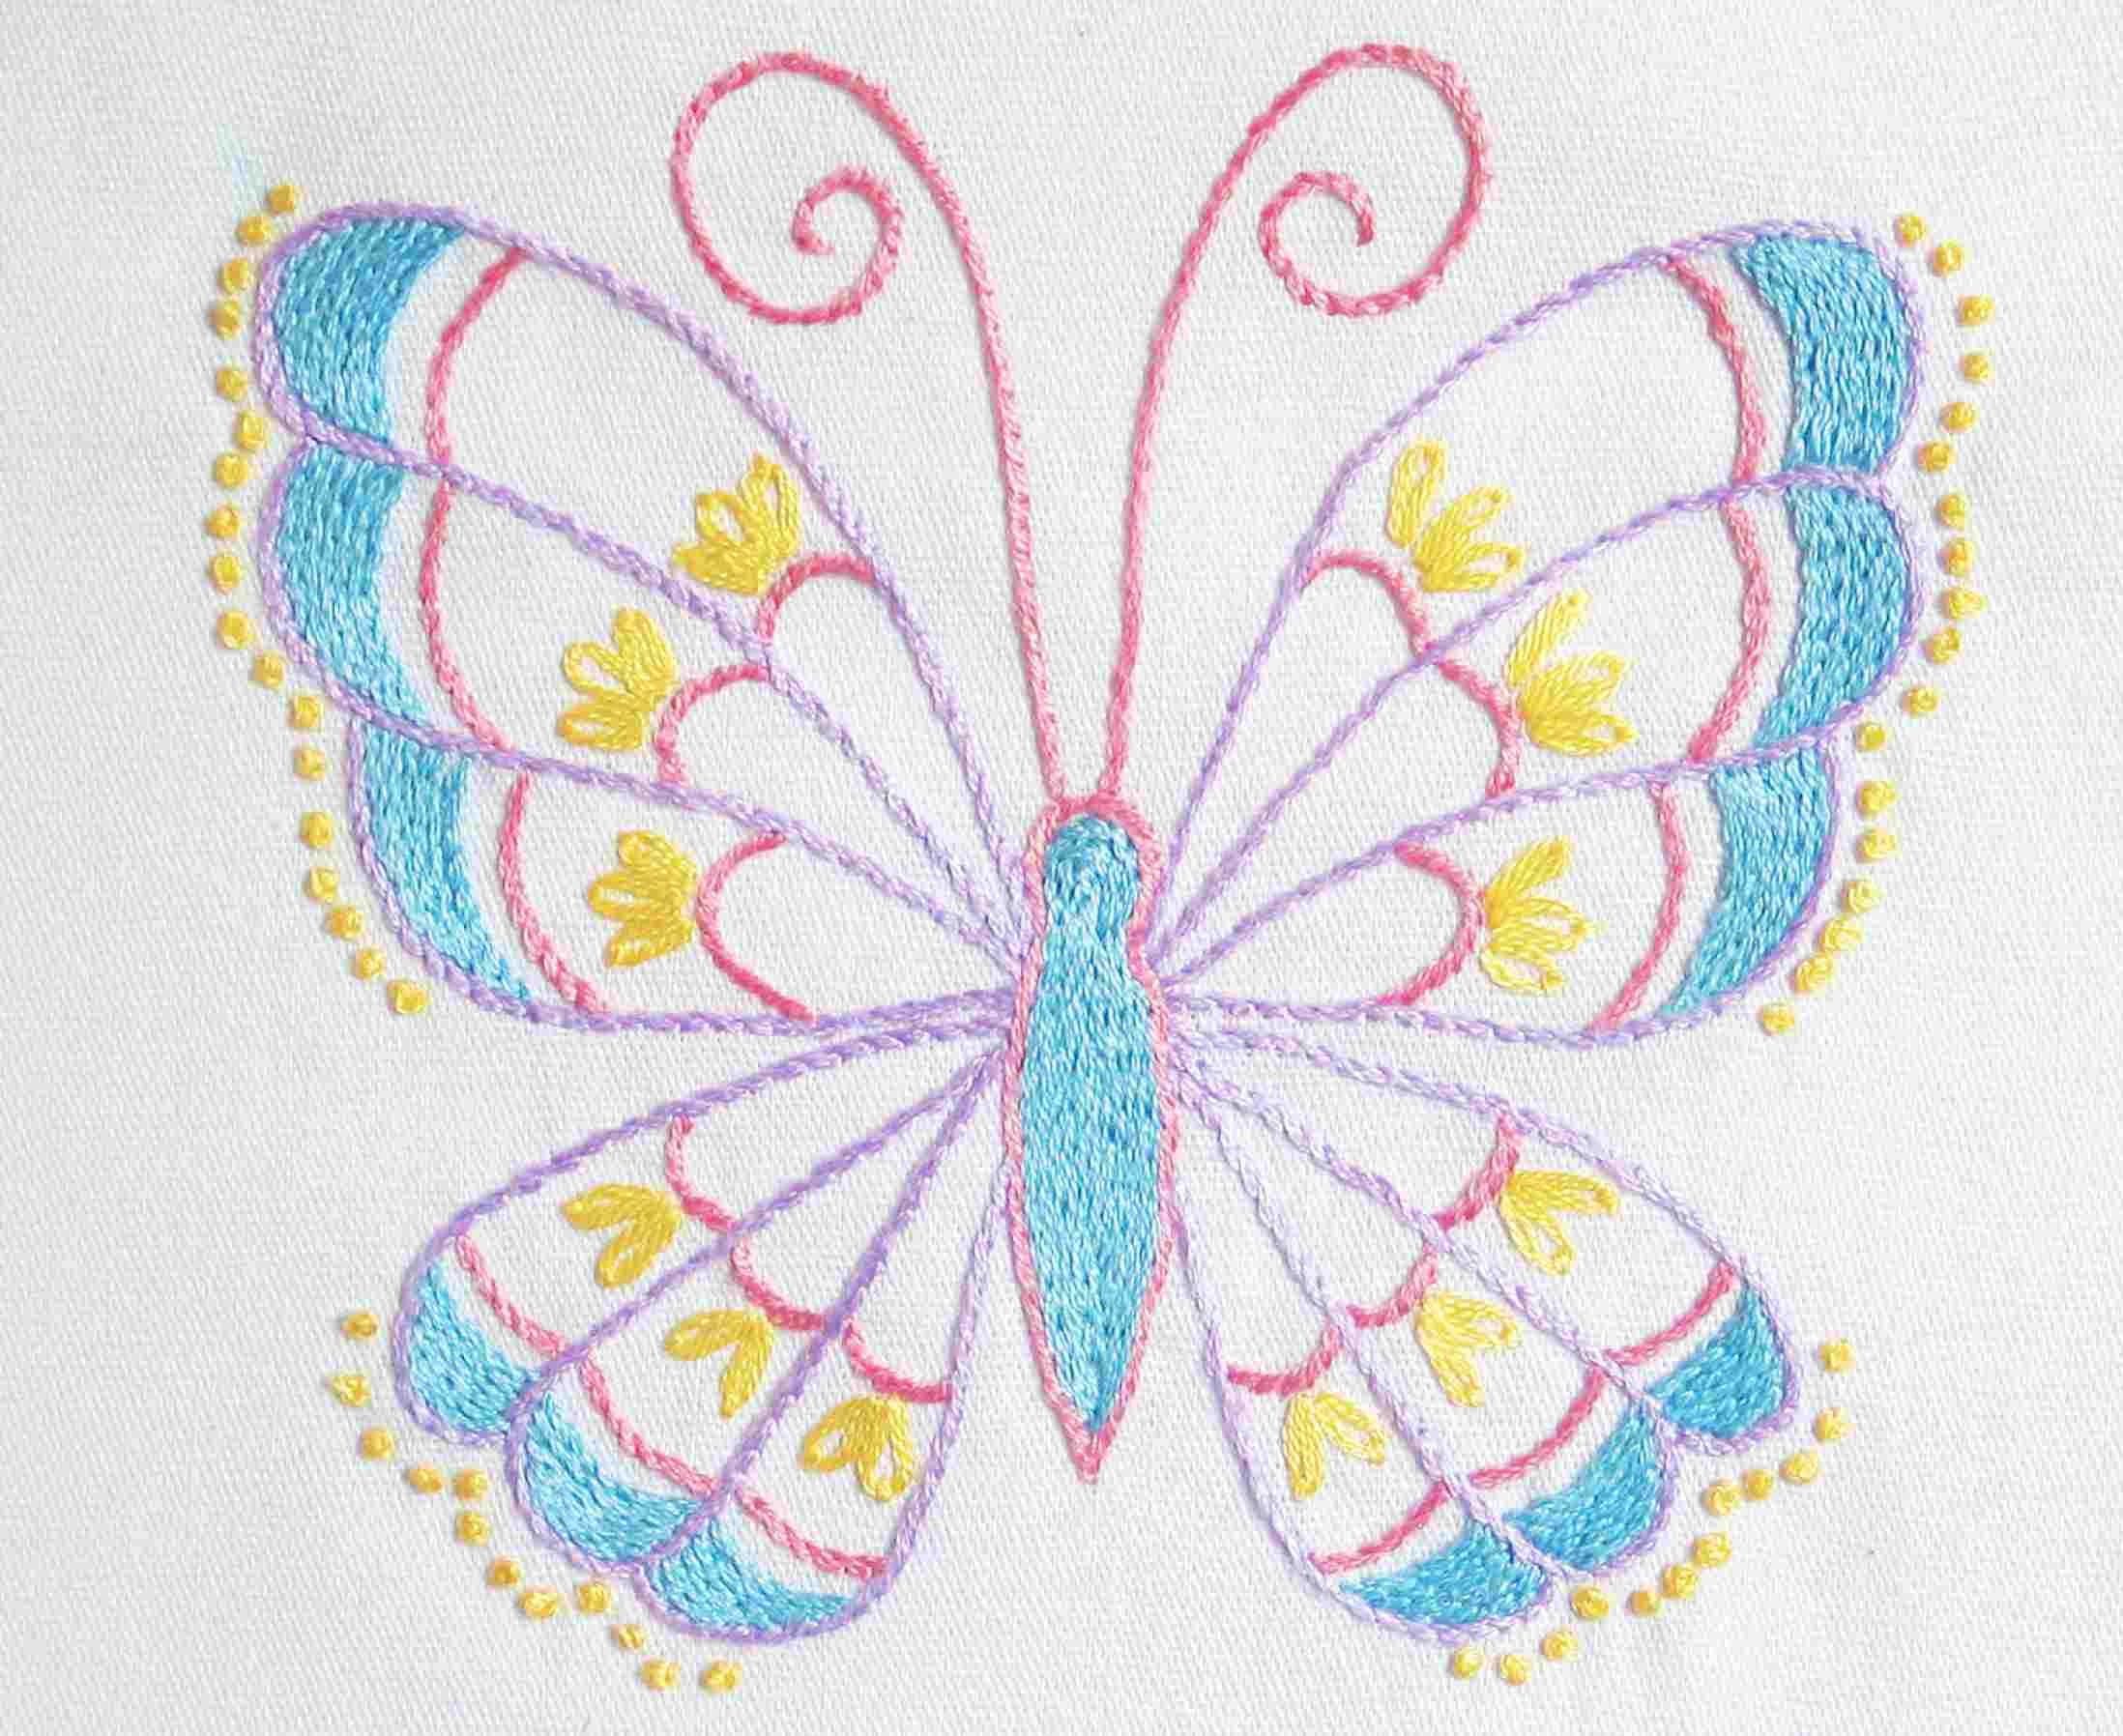 Paper Embroidery Cards Free Patterns Our Top 25 Free Embroidery Designs